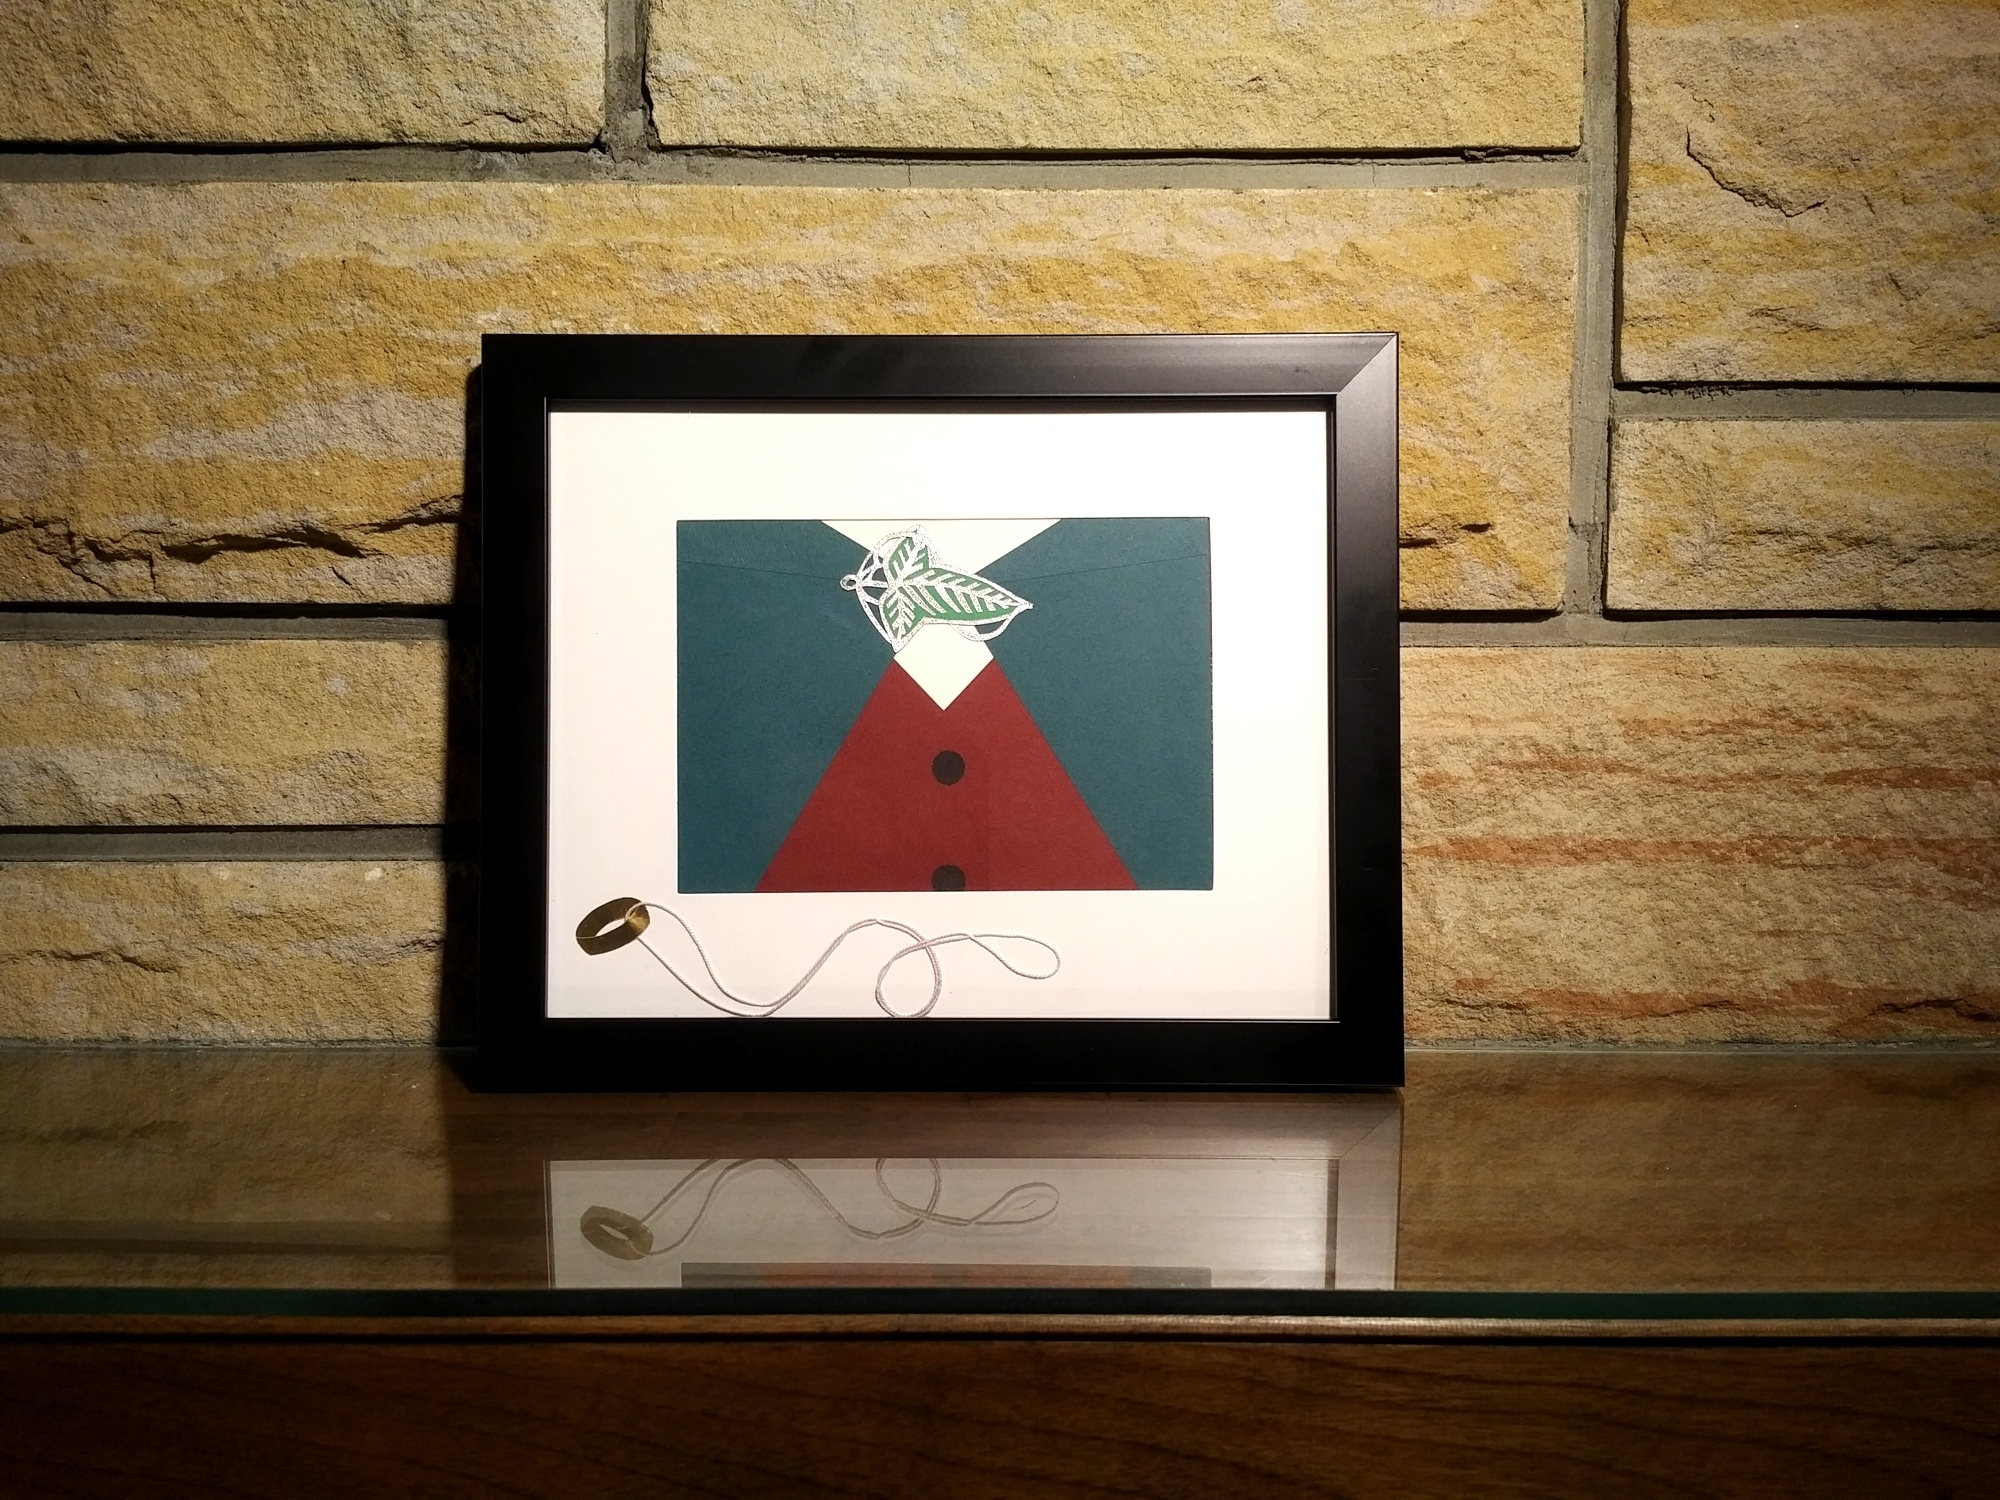 Current Lord Of The Rings Wall Art Within Frodo (Lord Of The Rings) Wall Art – Framed · Rice Paper Designs (View 8 of 15)